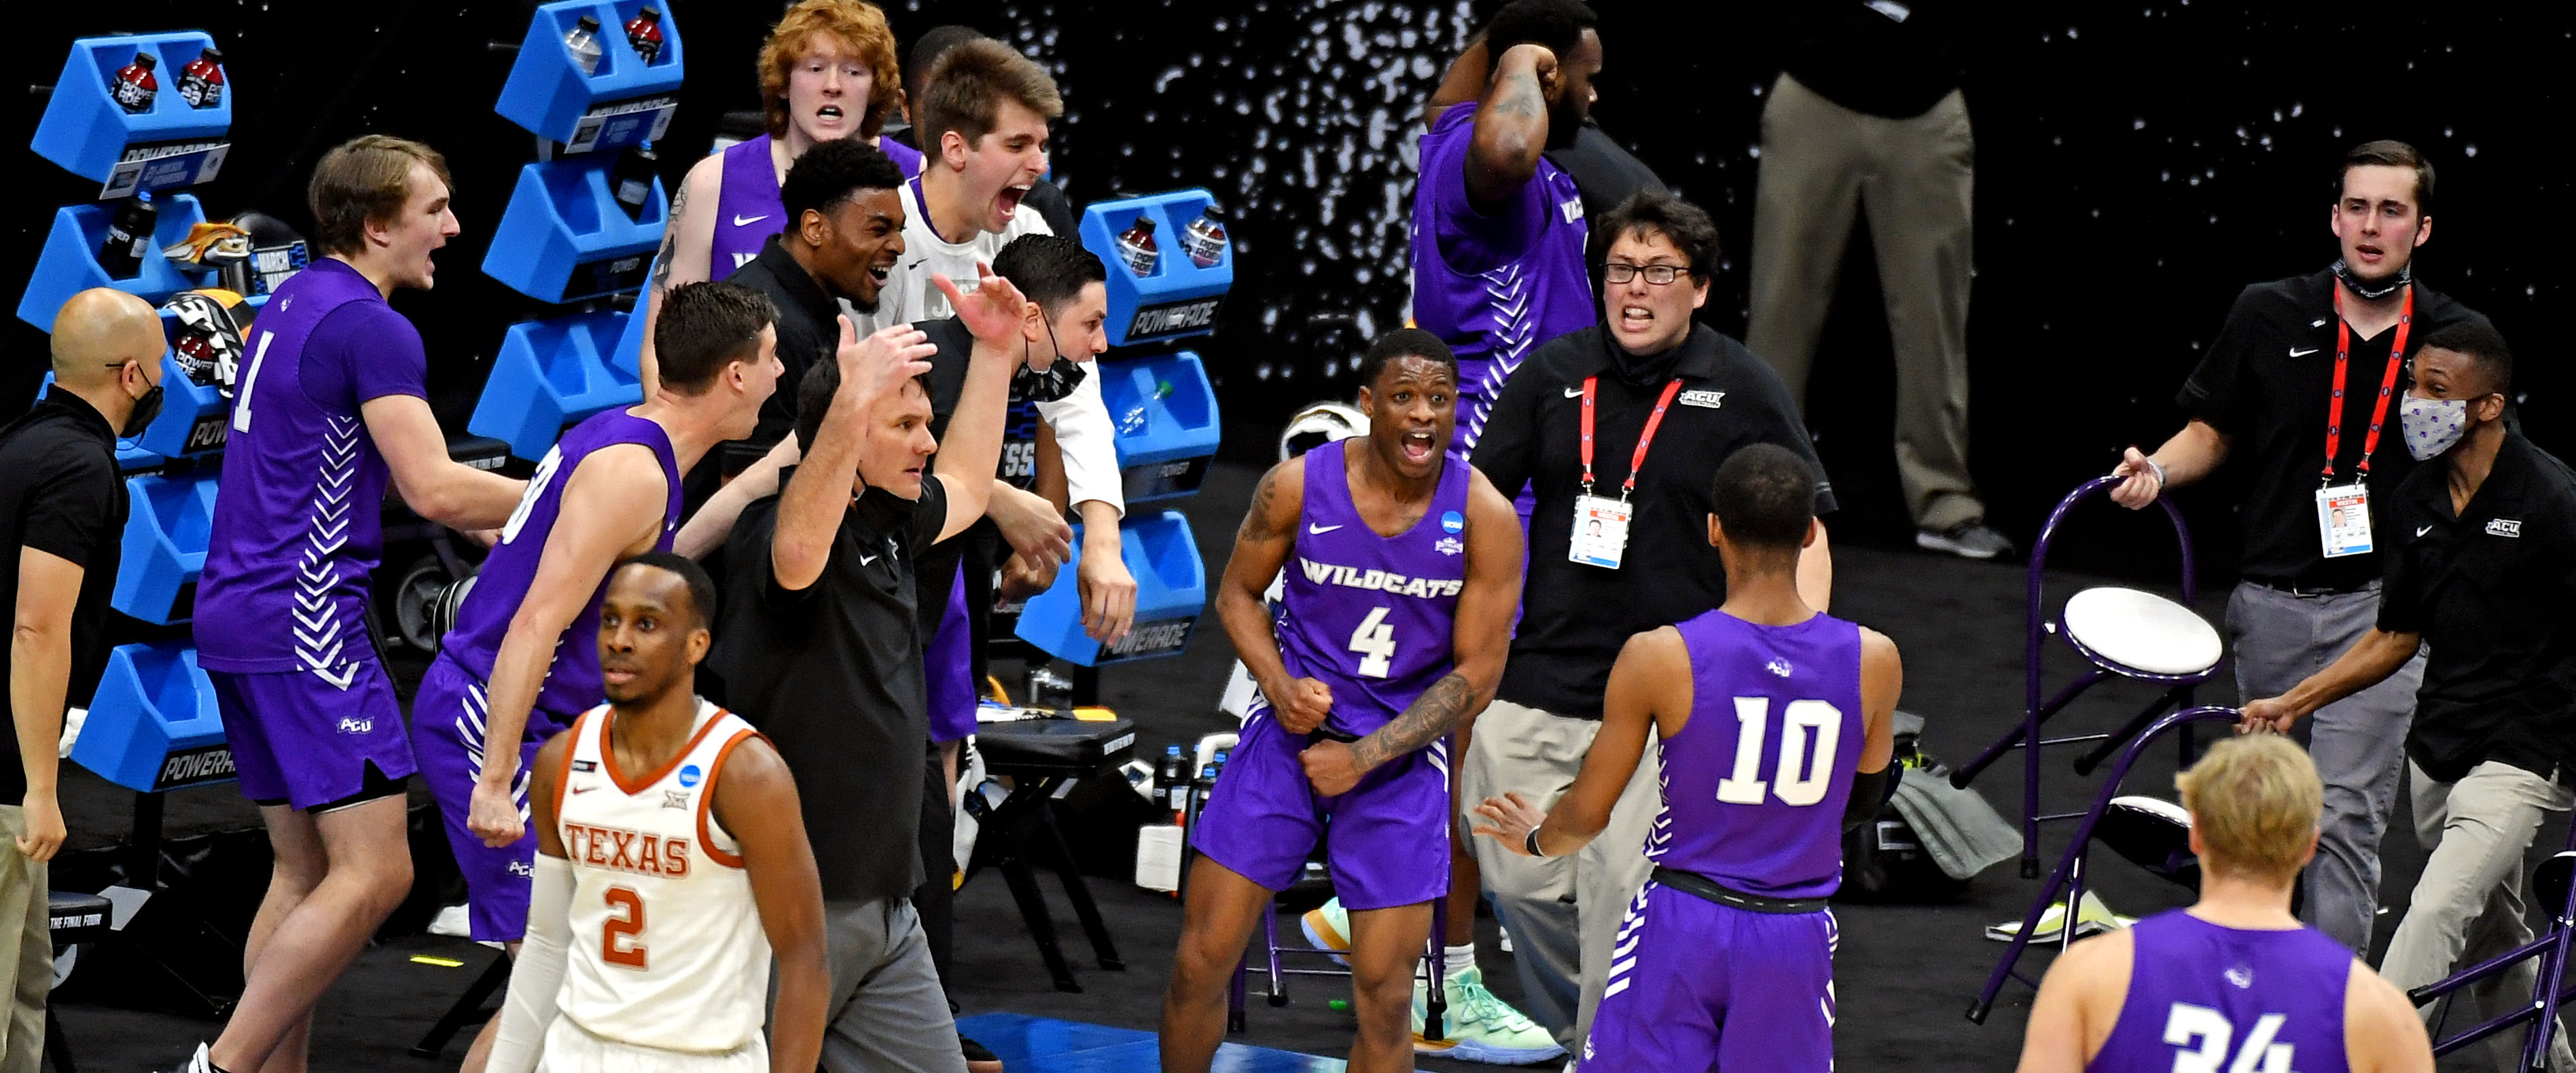 NCAA Tournament: Ranking the best upsets from the first round